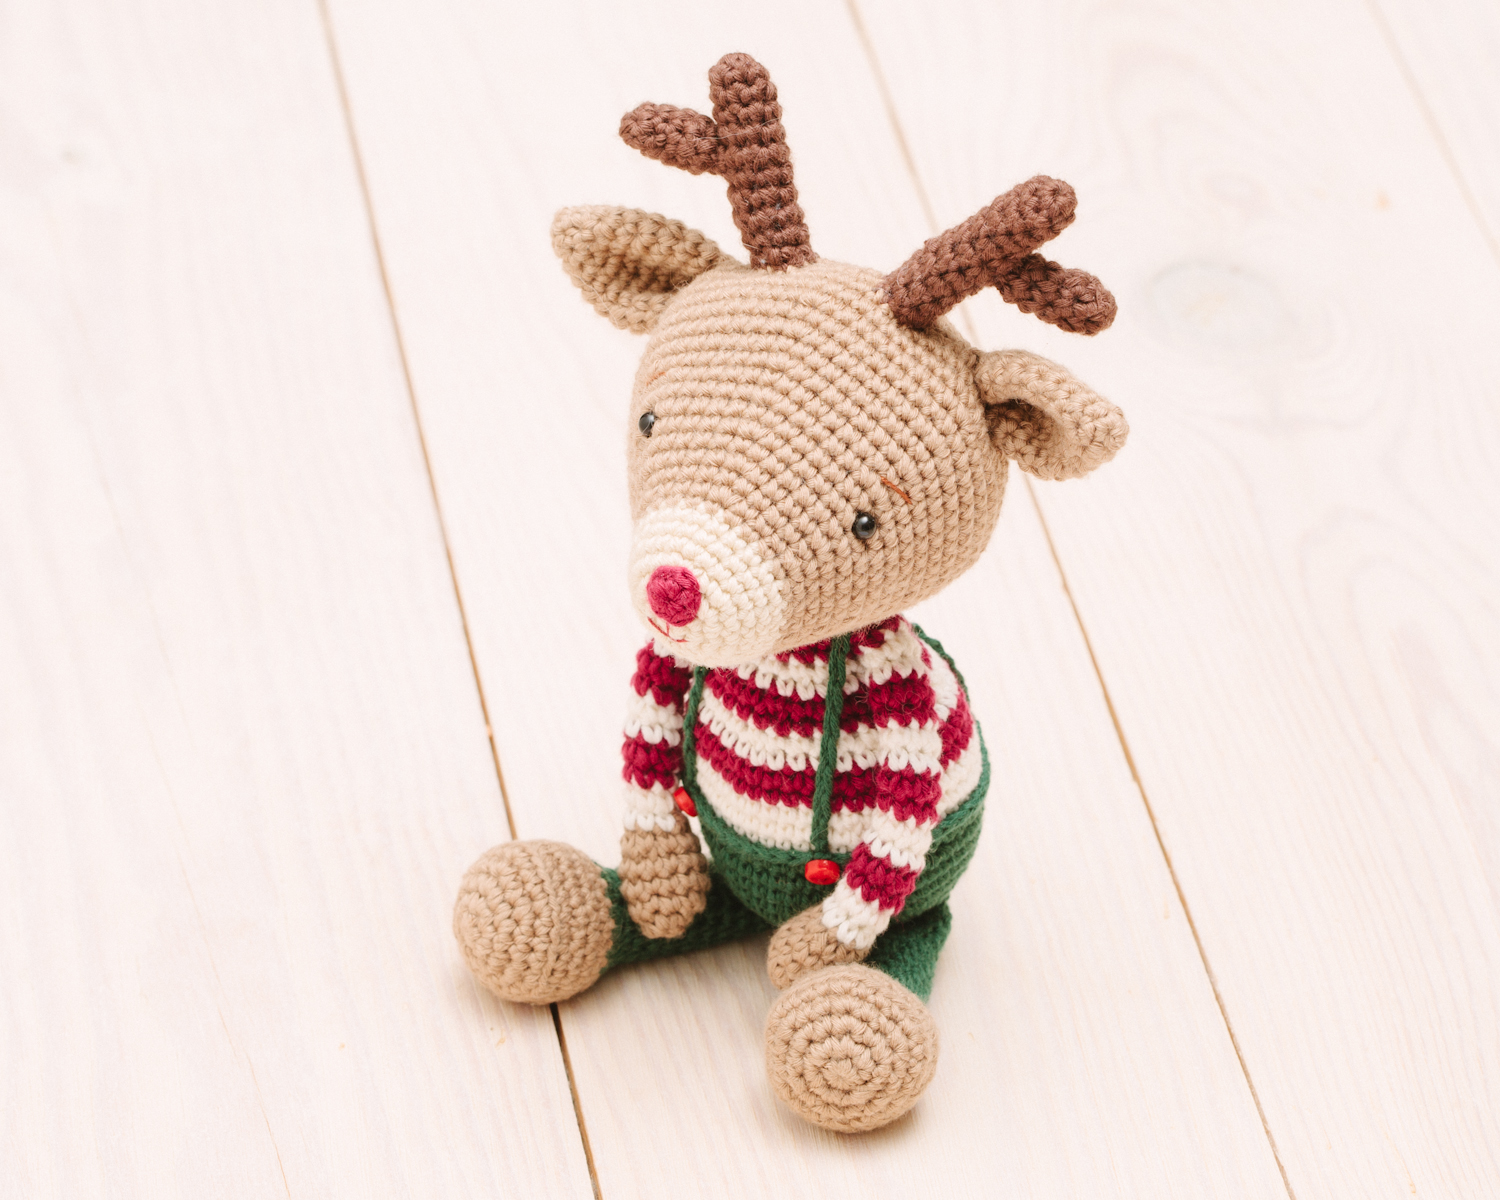 Baby Knitting Patterns Ruby the Reindeer essential oil diffuser ... | 1200x1500